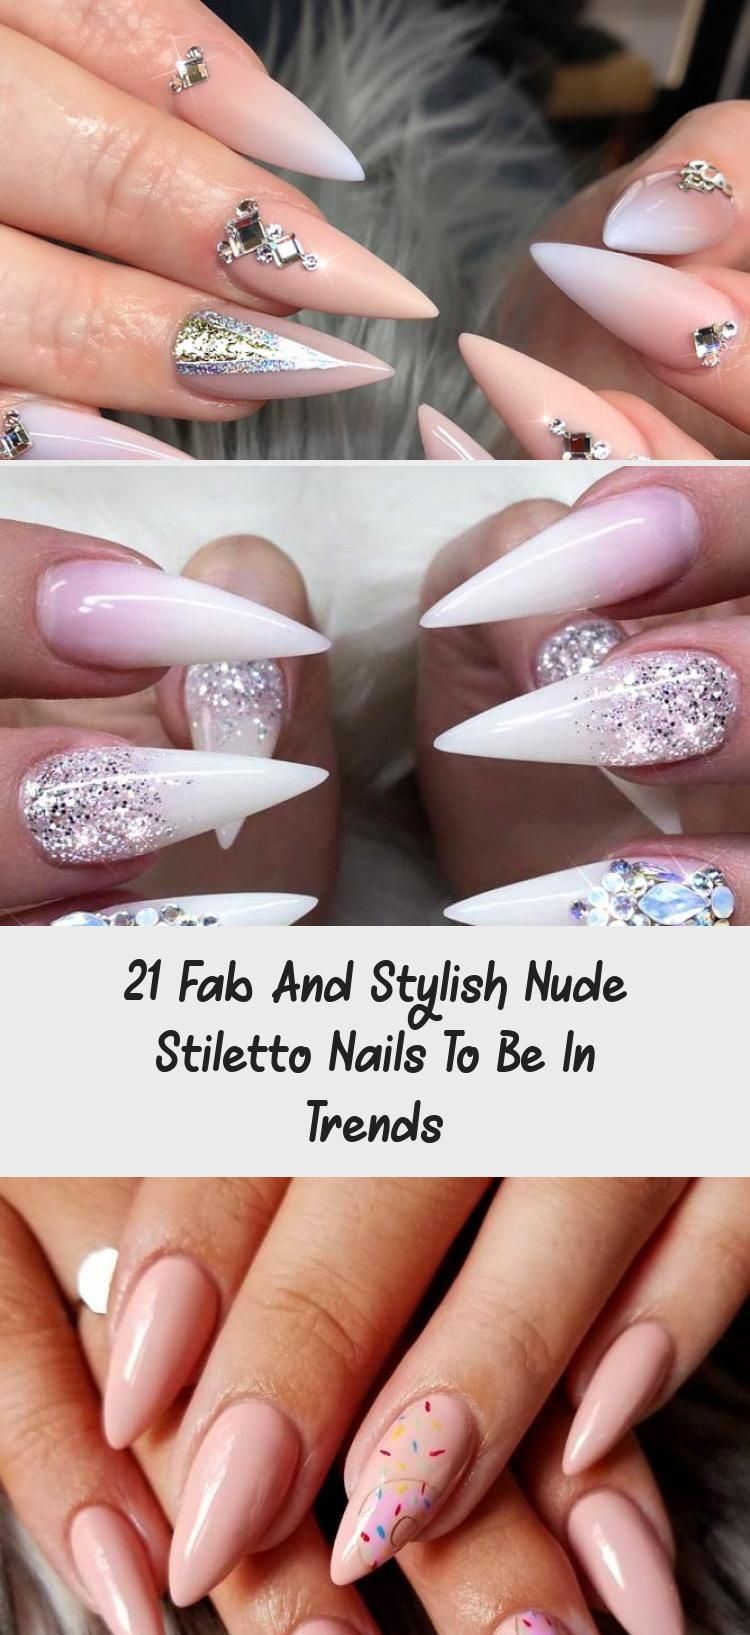 Photo of 21 Fab And Stylish Nude Stiletto Nails To Be In Trends – Nail Art